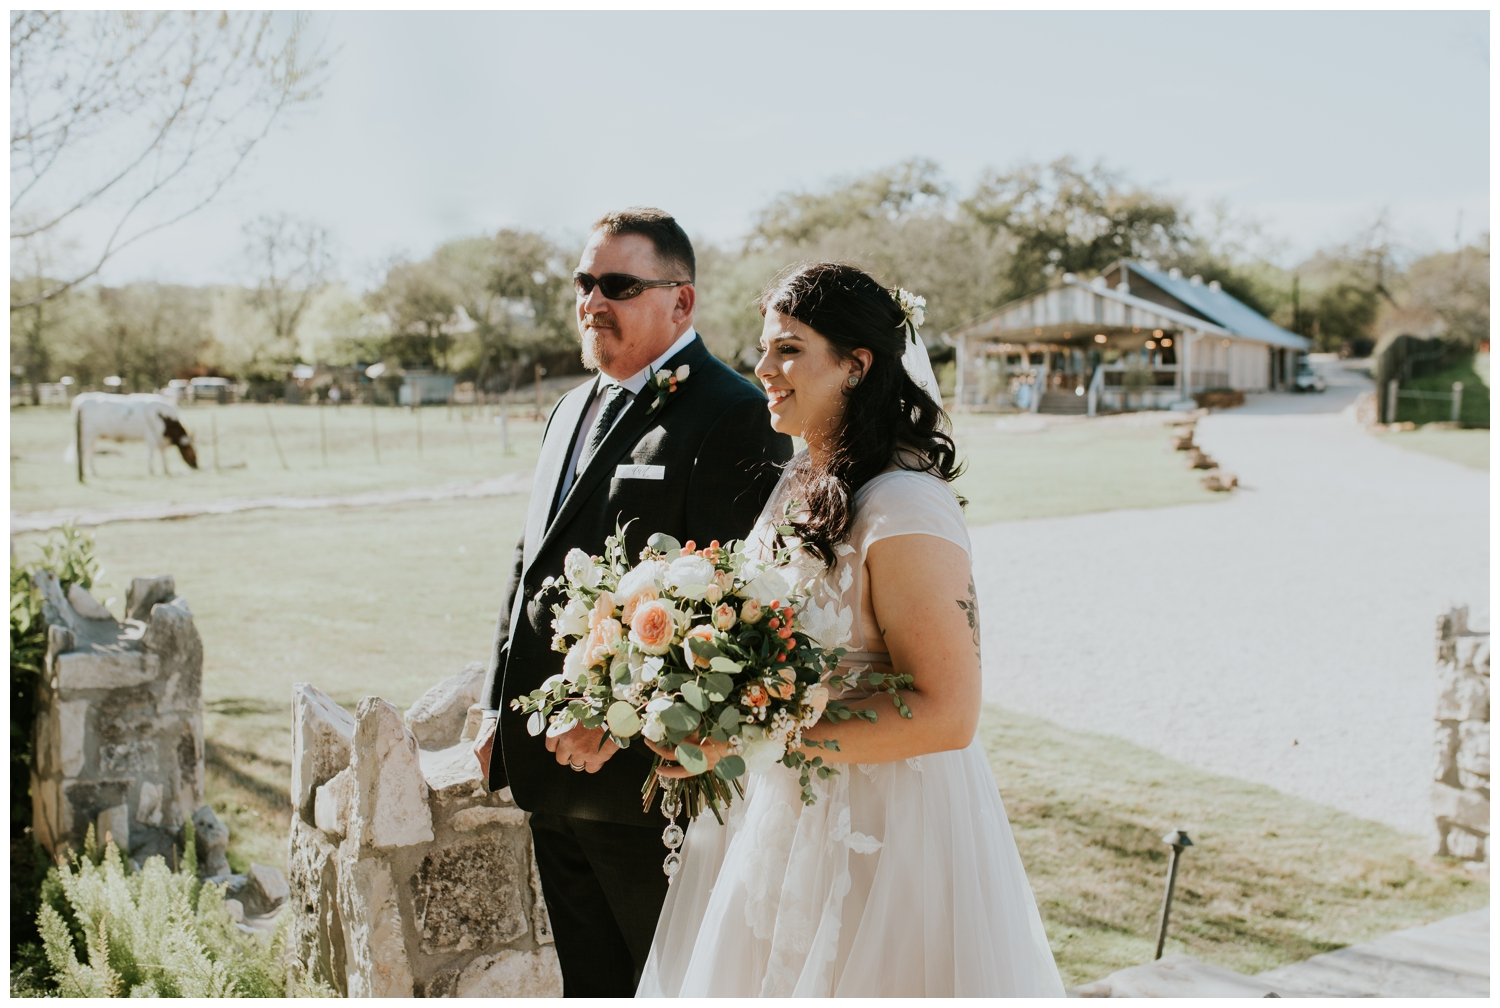 Sarah+Michael, Gruene Estate Wedding, San Antonio, Contista Productions Wedding Photography_0026.jpg